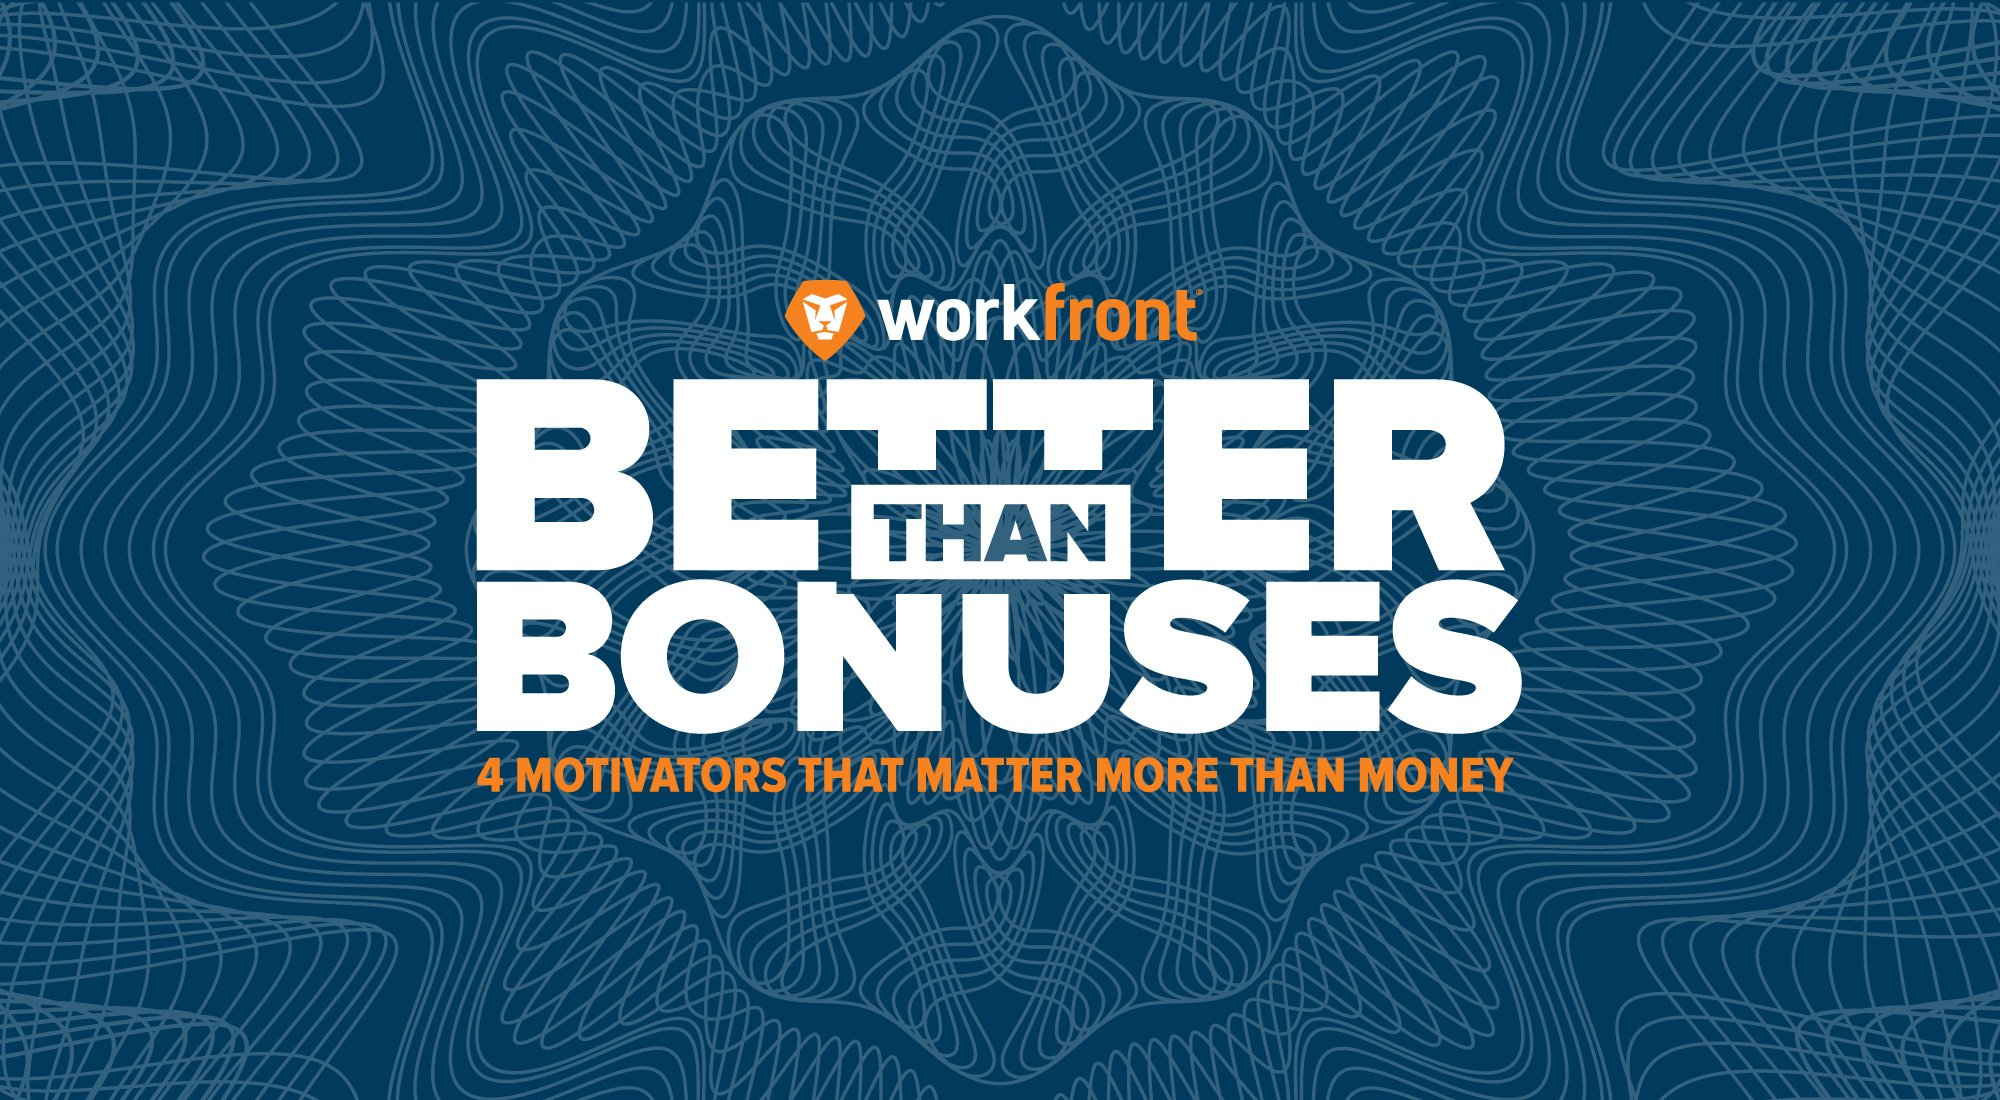 Better than Bonuses: 4 Motivators that Matter More than Money